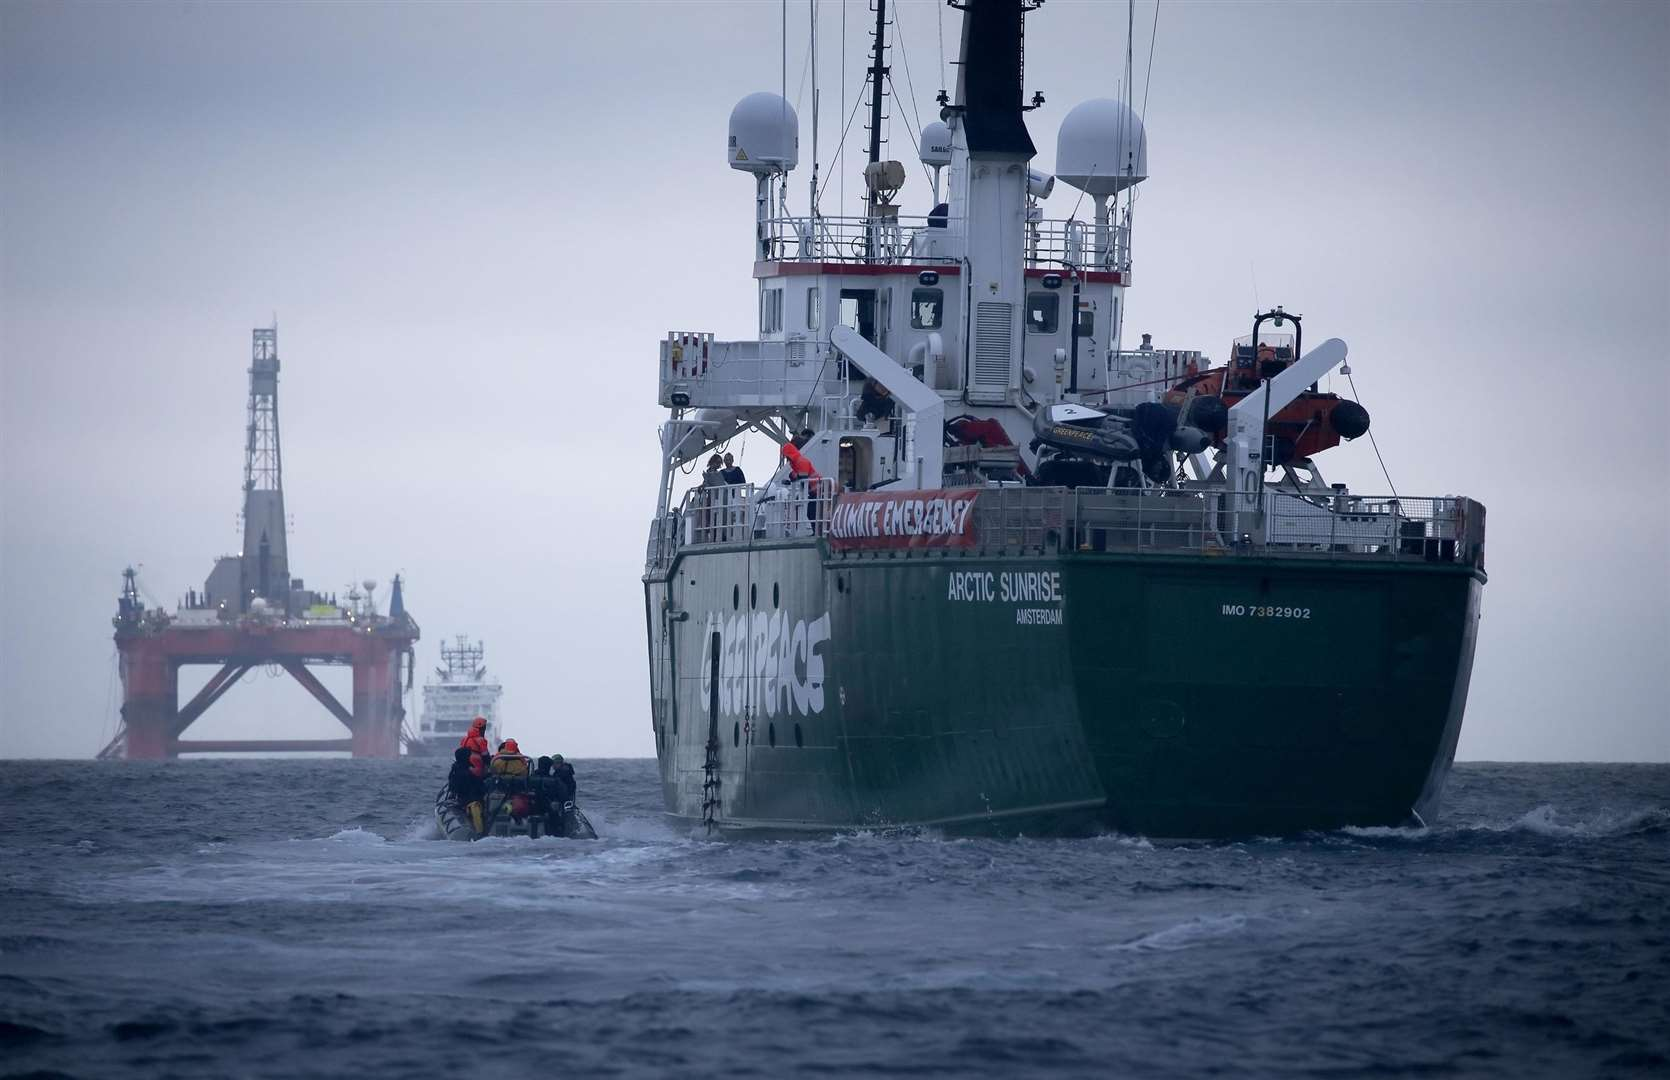 BP rig makes u-turn amid Greenpeace protest